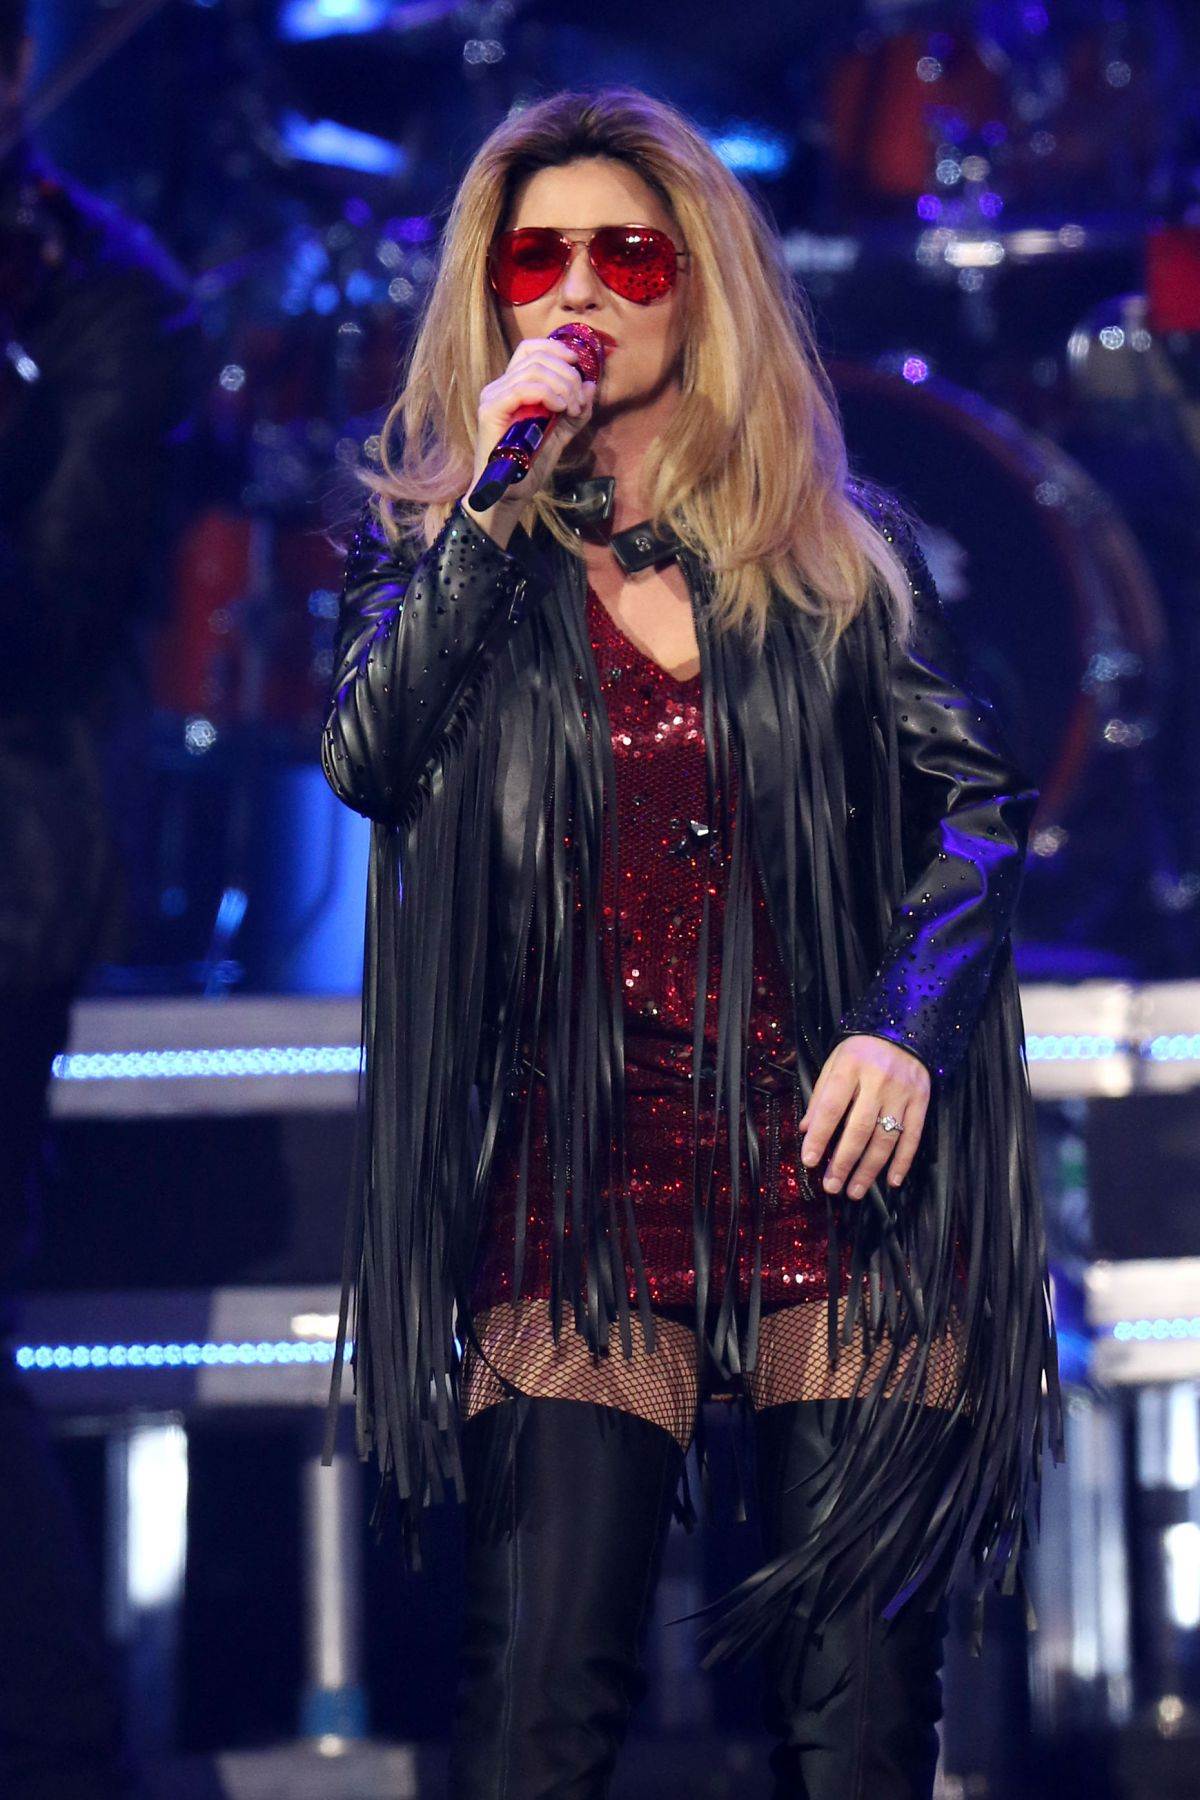 Shania Twain Performs At Msg In New York 06 30 2015